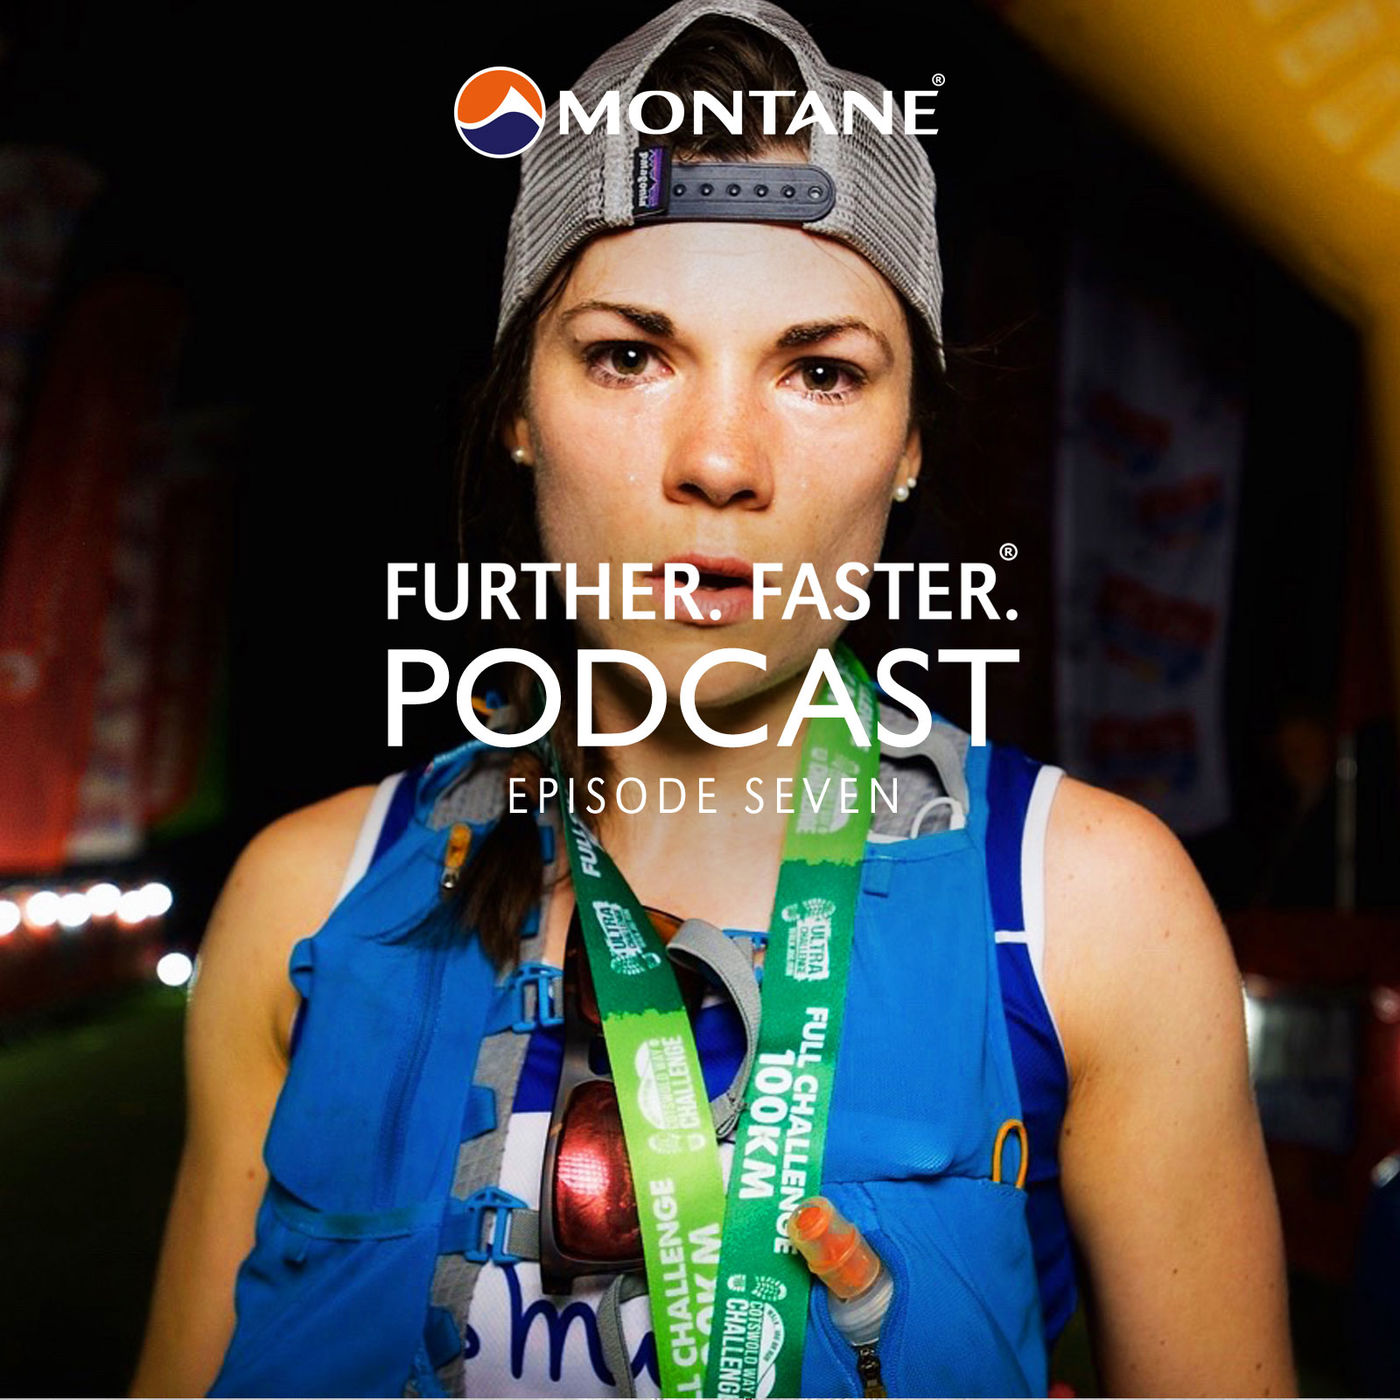 Further. Faster. Podcast Ep7 (Ultra-athlete Katy Parrott)